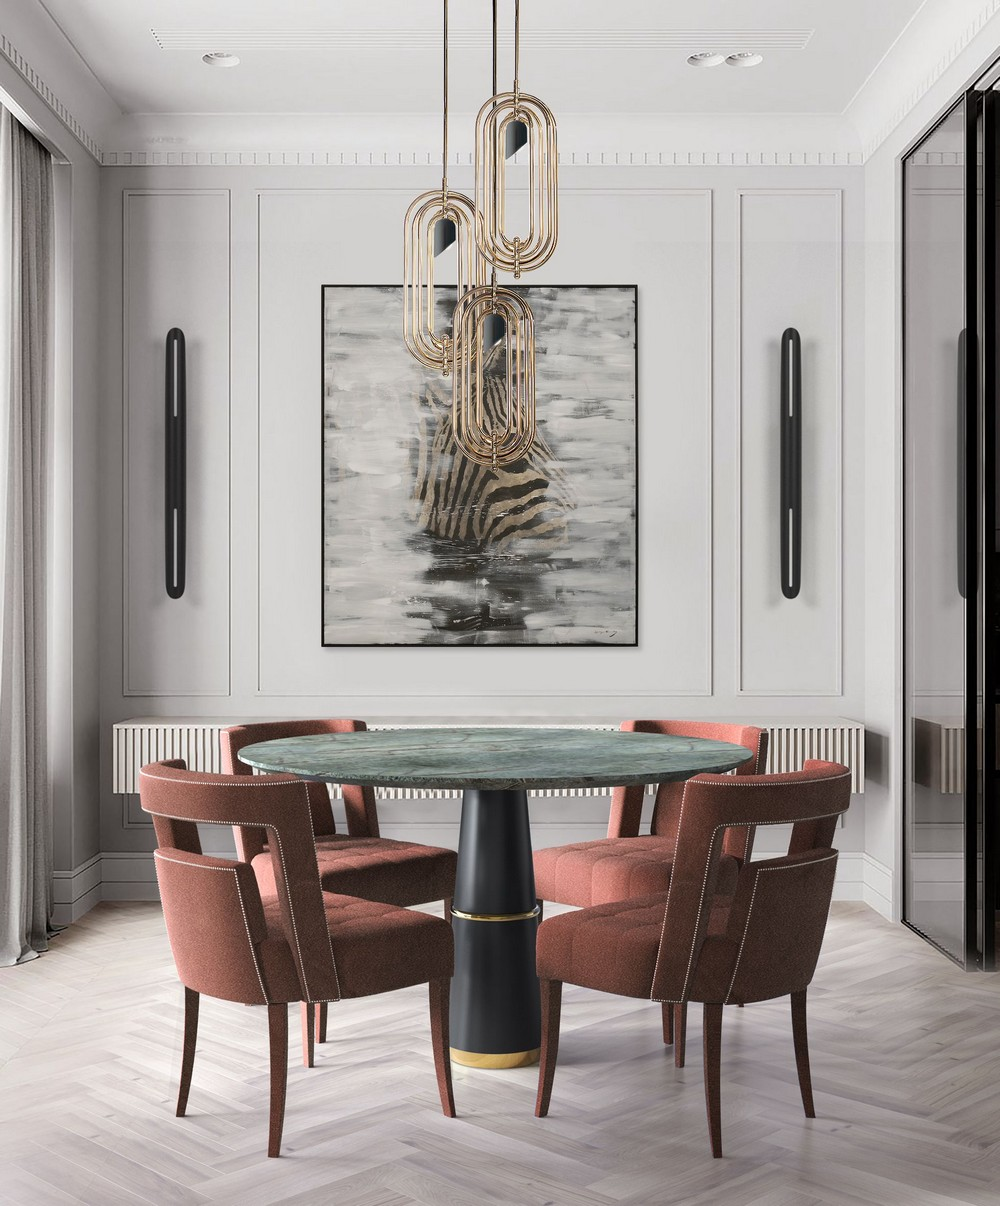 A Selection of Colorful Luxury Furniture For Your Dining Room luxury furniture A Selection of Colorful Luxury Furniture For Your Dining Room naj